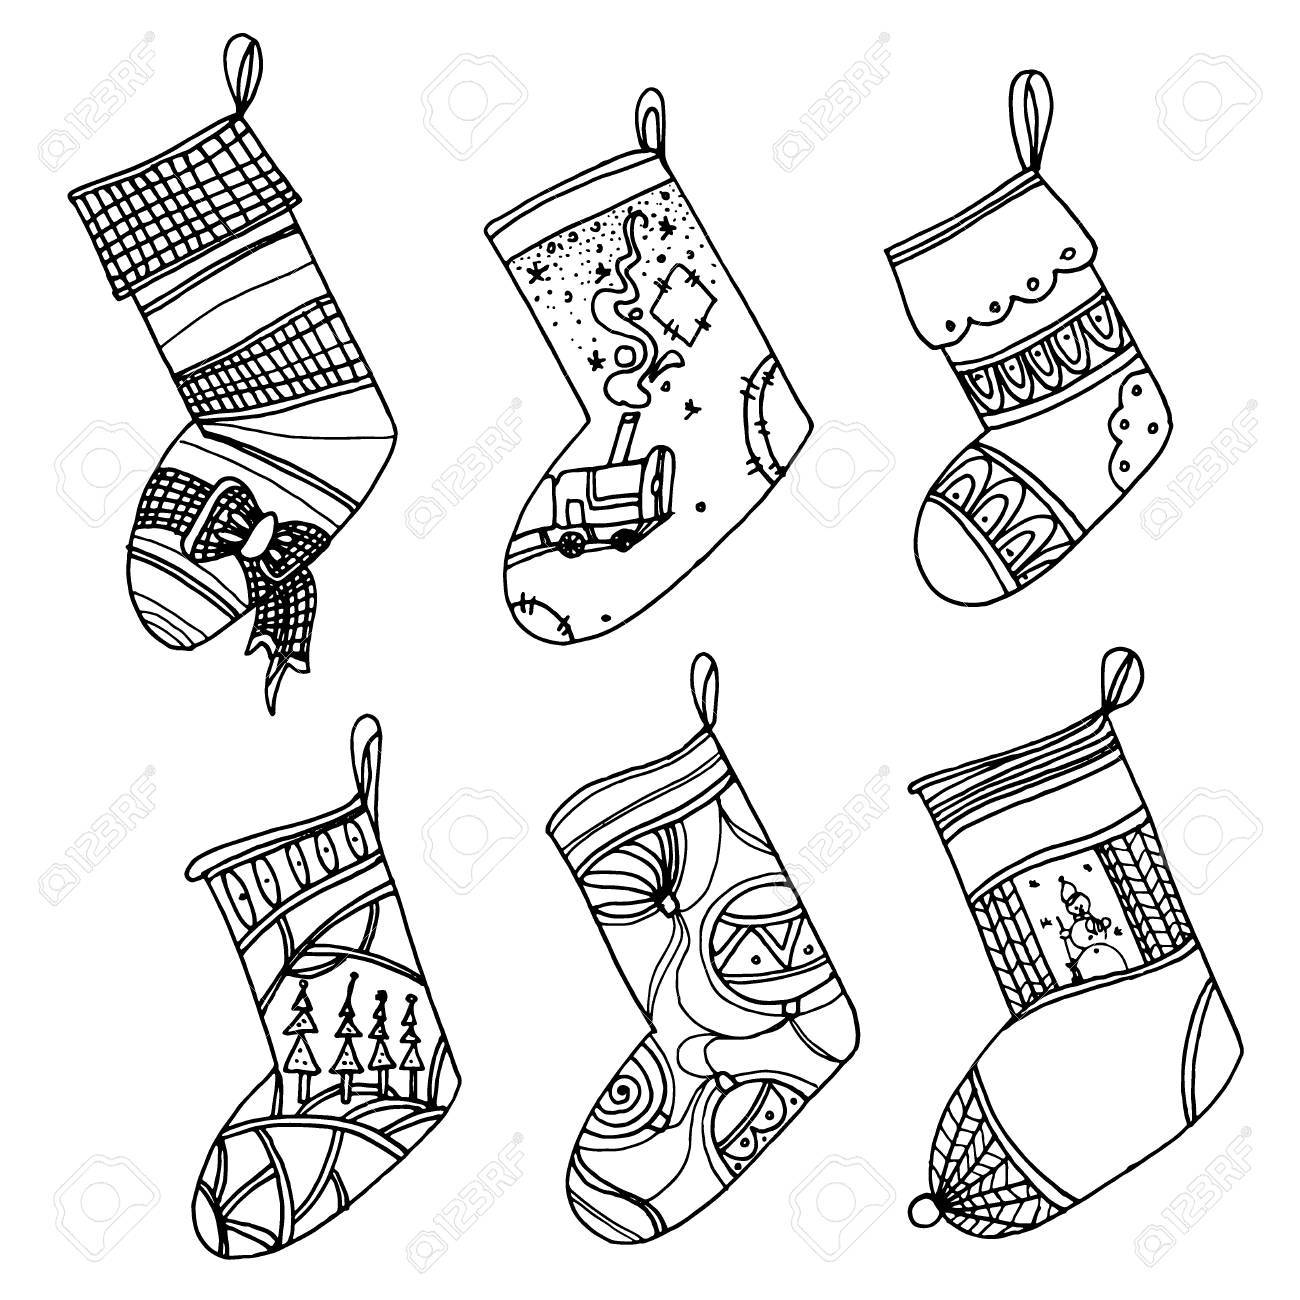 Black And White Christmas Stockings.Set Of Christmas Stockings Collection Of Vector Stylized Winter